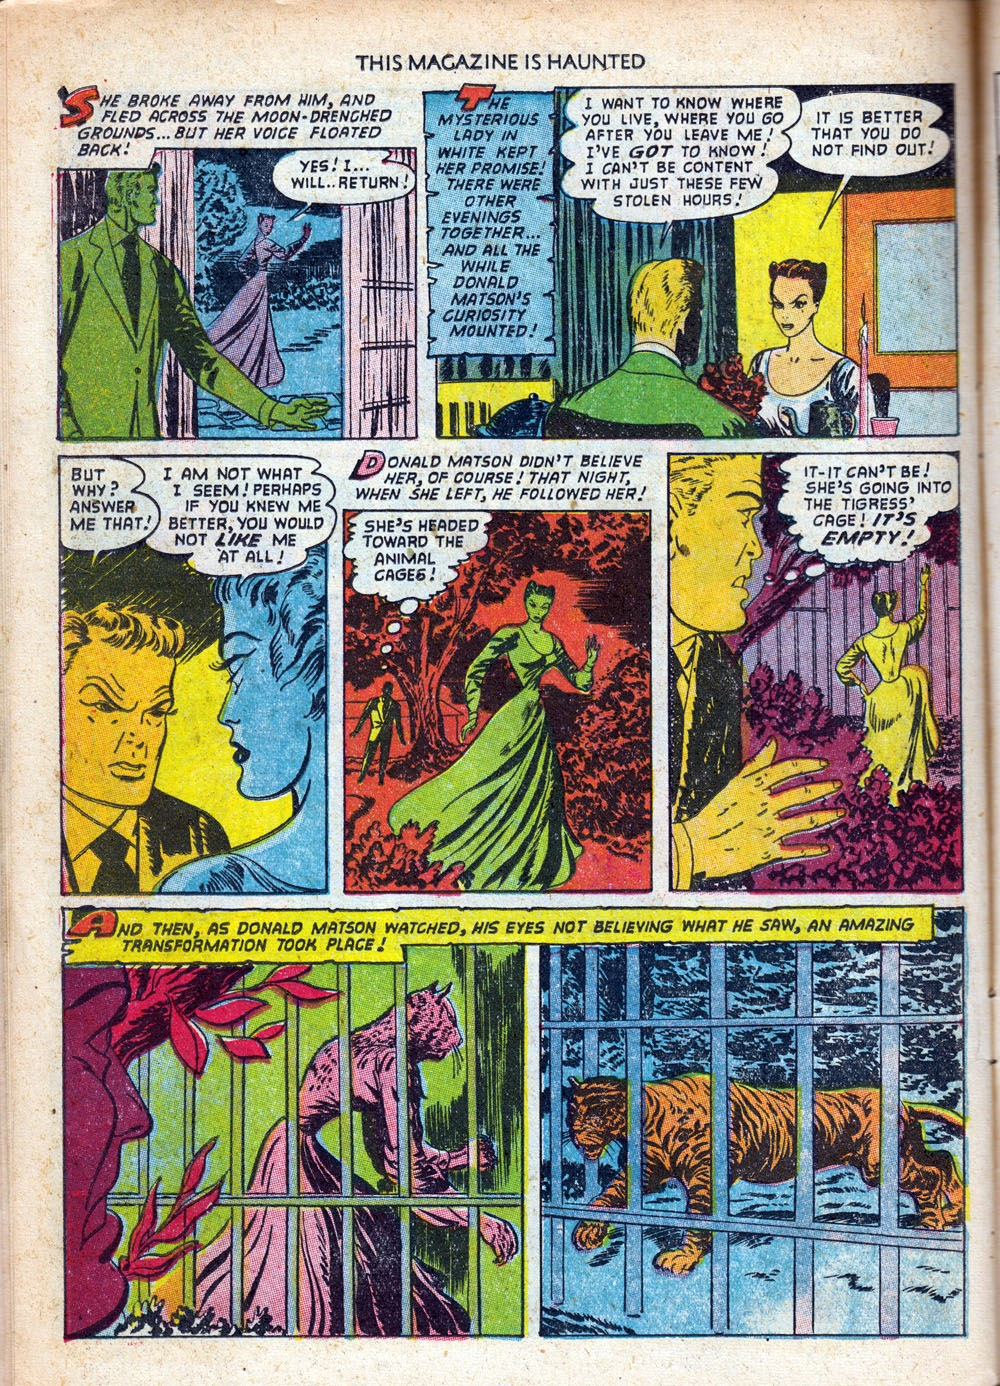 Read online This Magazine Is Haunted comic -  Issue #9 - 26